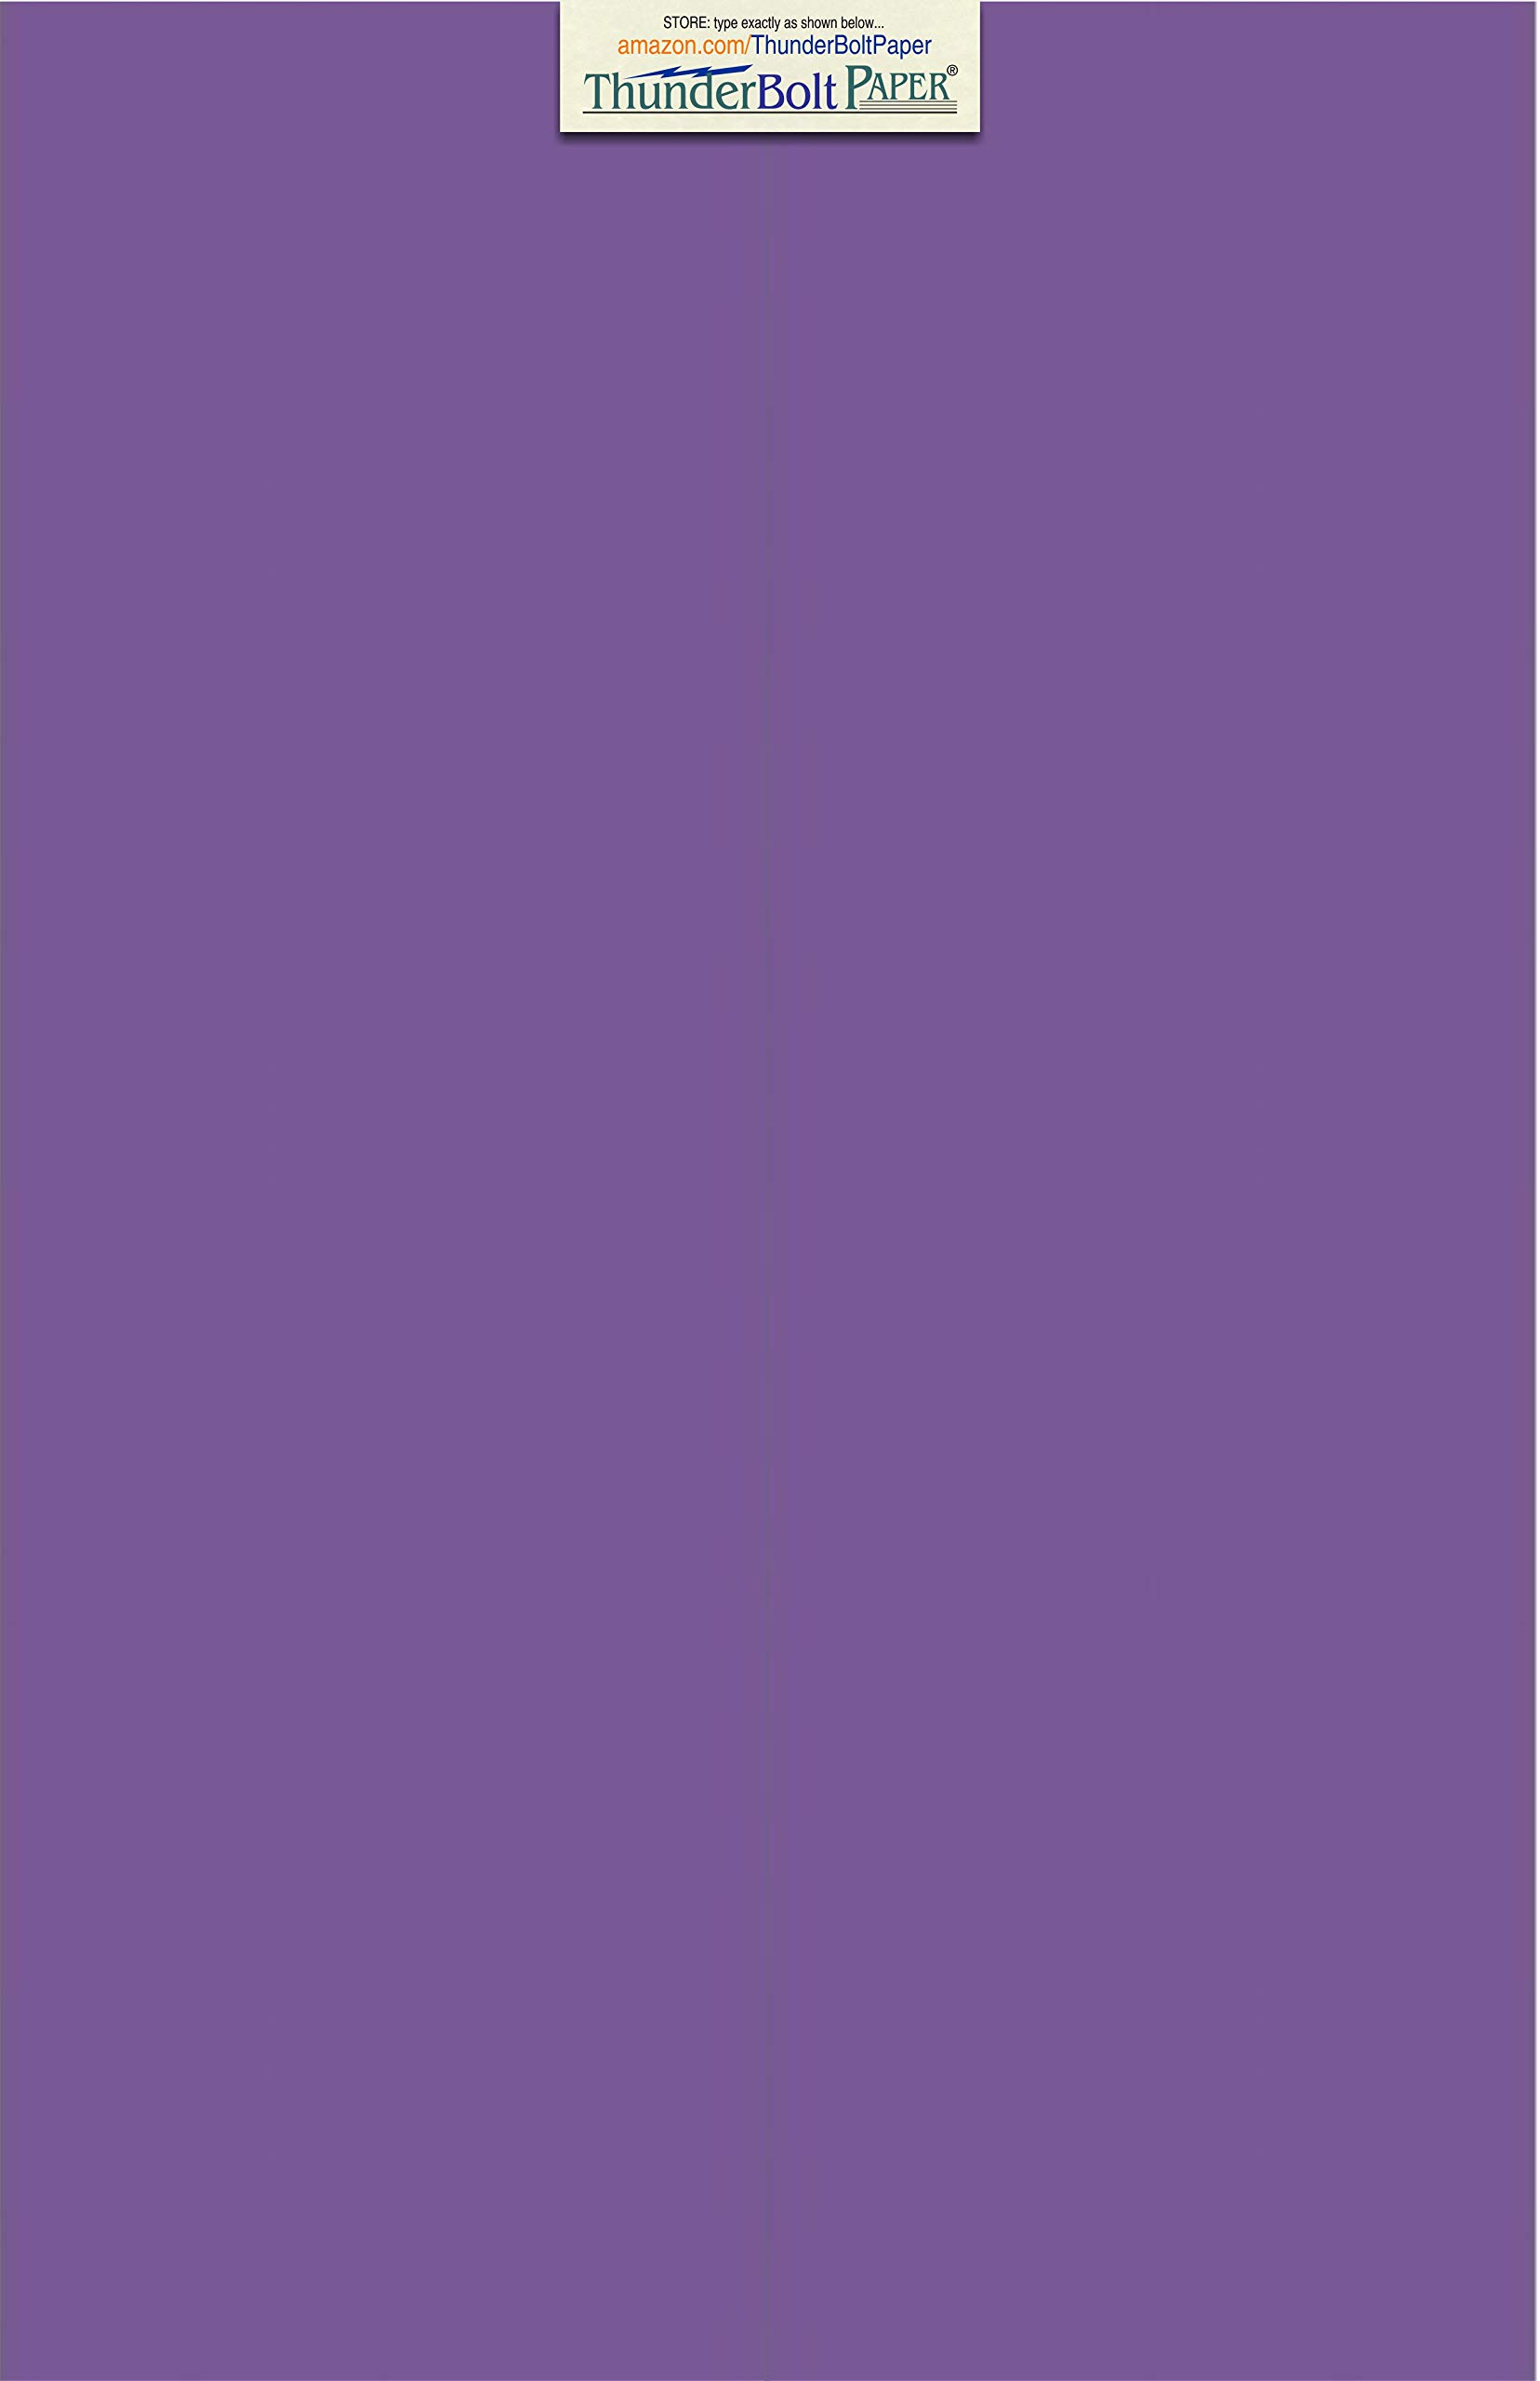 50 Bright Purple Grape 65# Cardstock Paper 11'' X 17'' (11X17 Inches) Tabloid|Ledger|Booklet Size - 65Cover/45Bond Light Weight Card Stock - Bright Printable Smooth Paper Surface